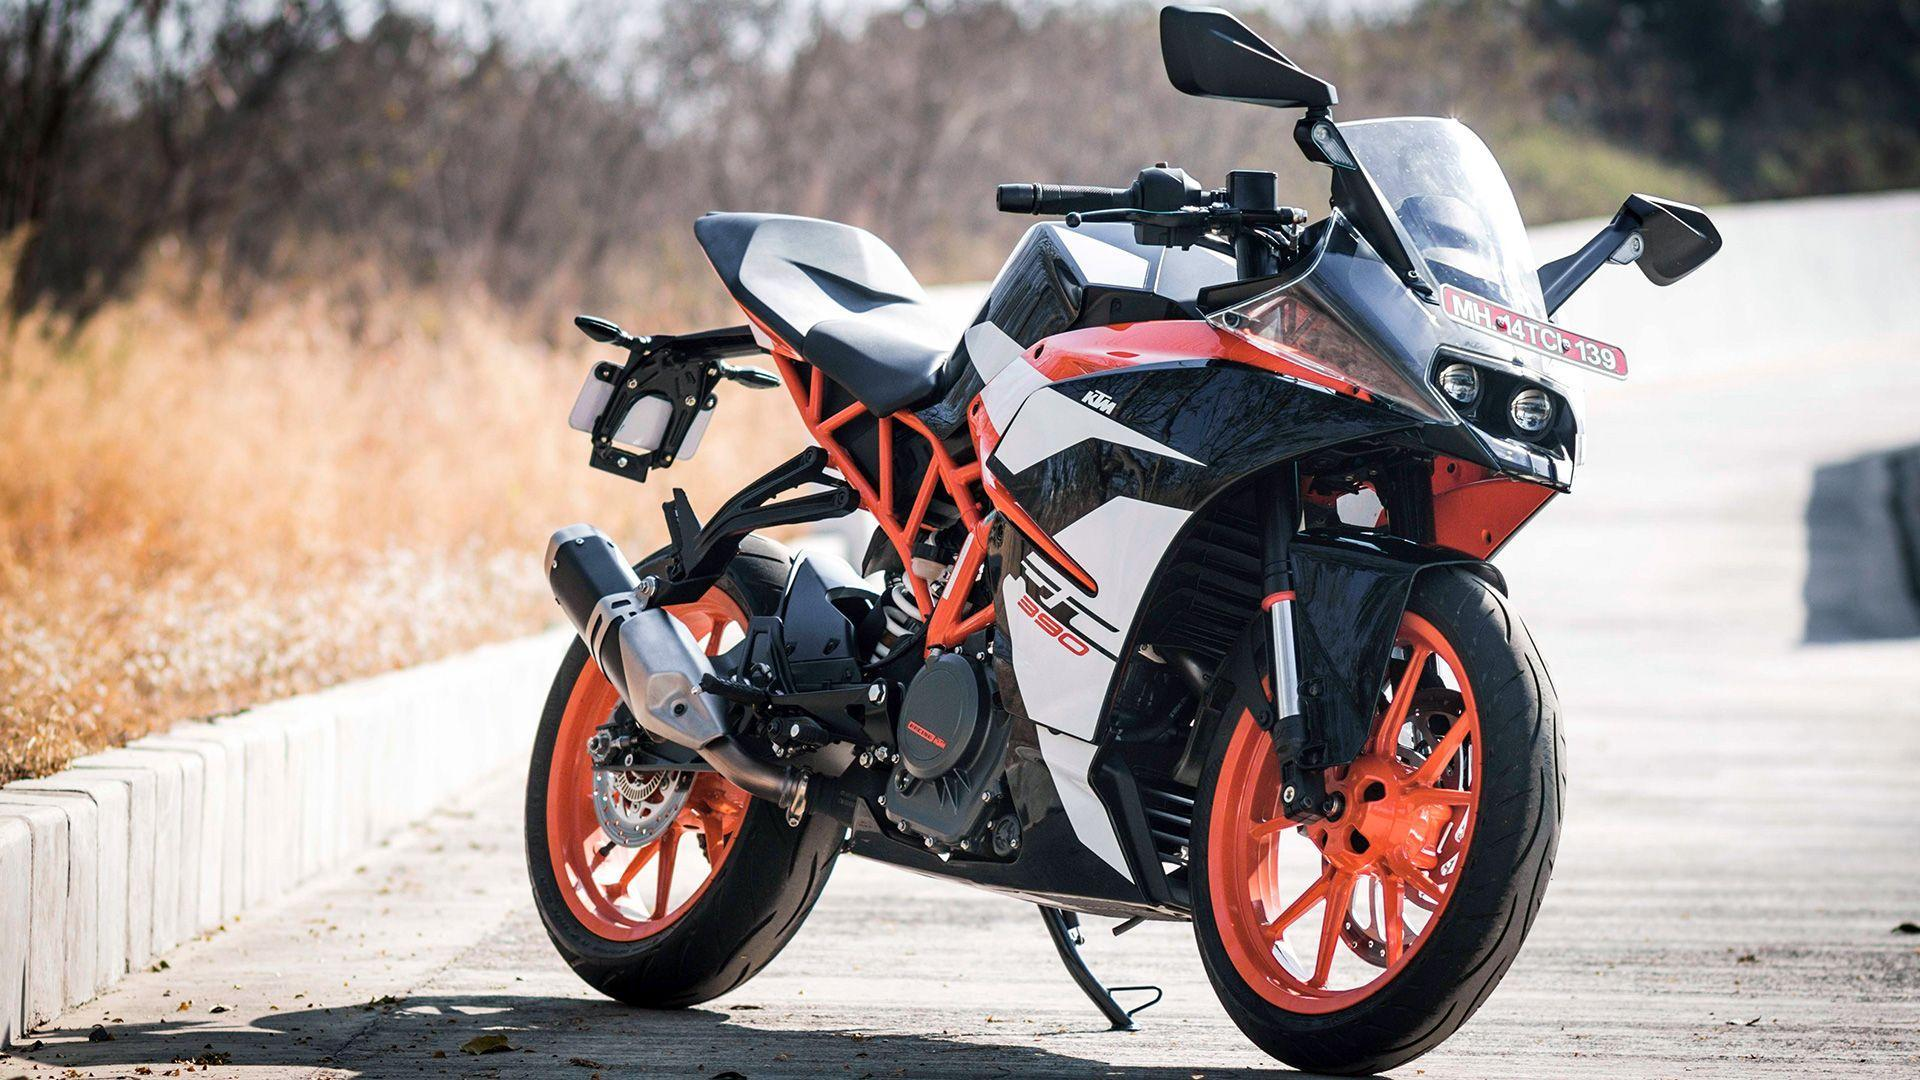 KTM RC 390 2017 - Price, Mileage, Reviews, Specification, Gallery ...